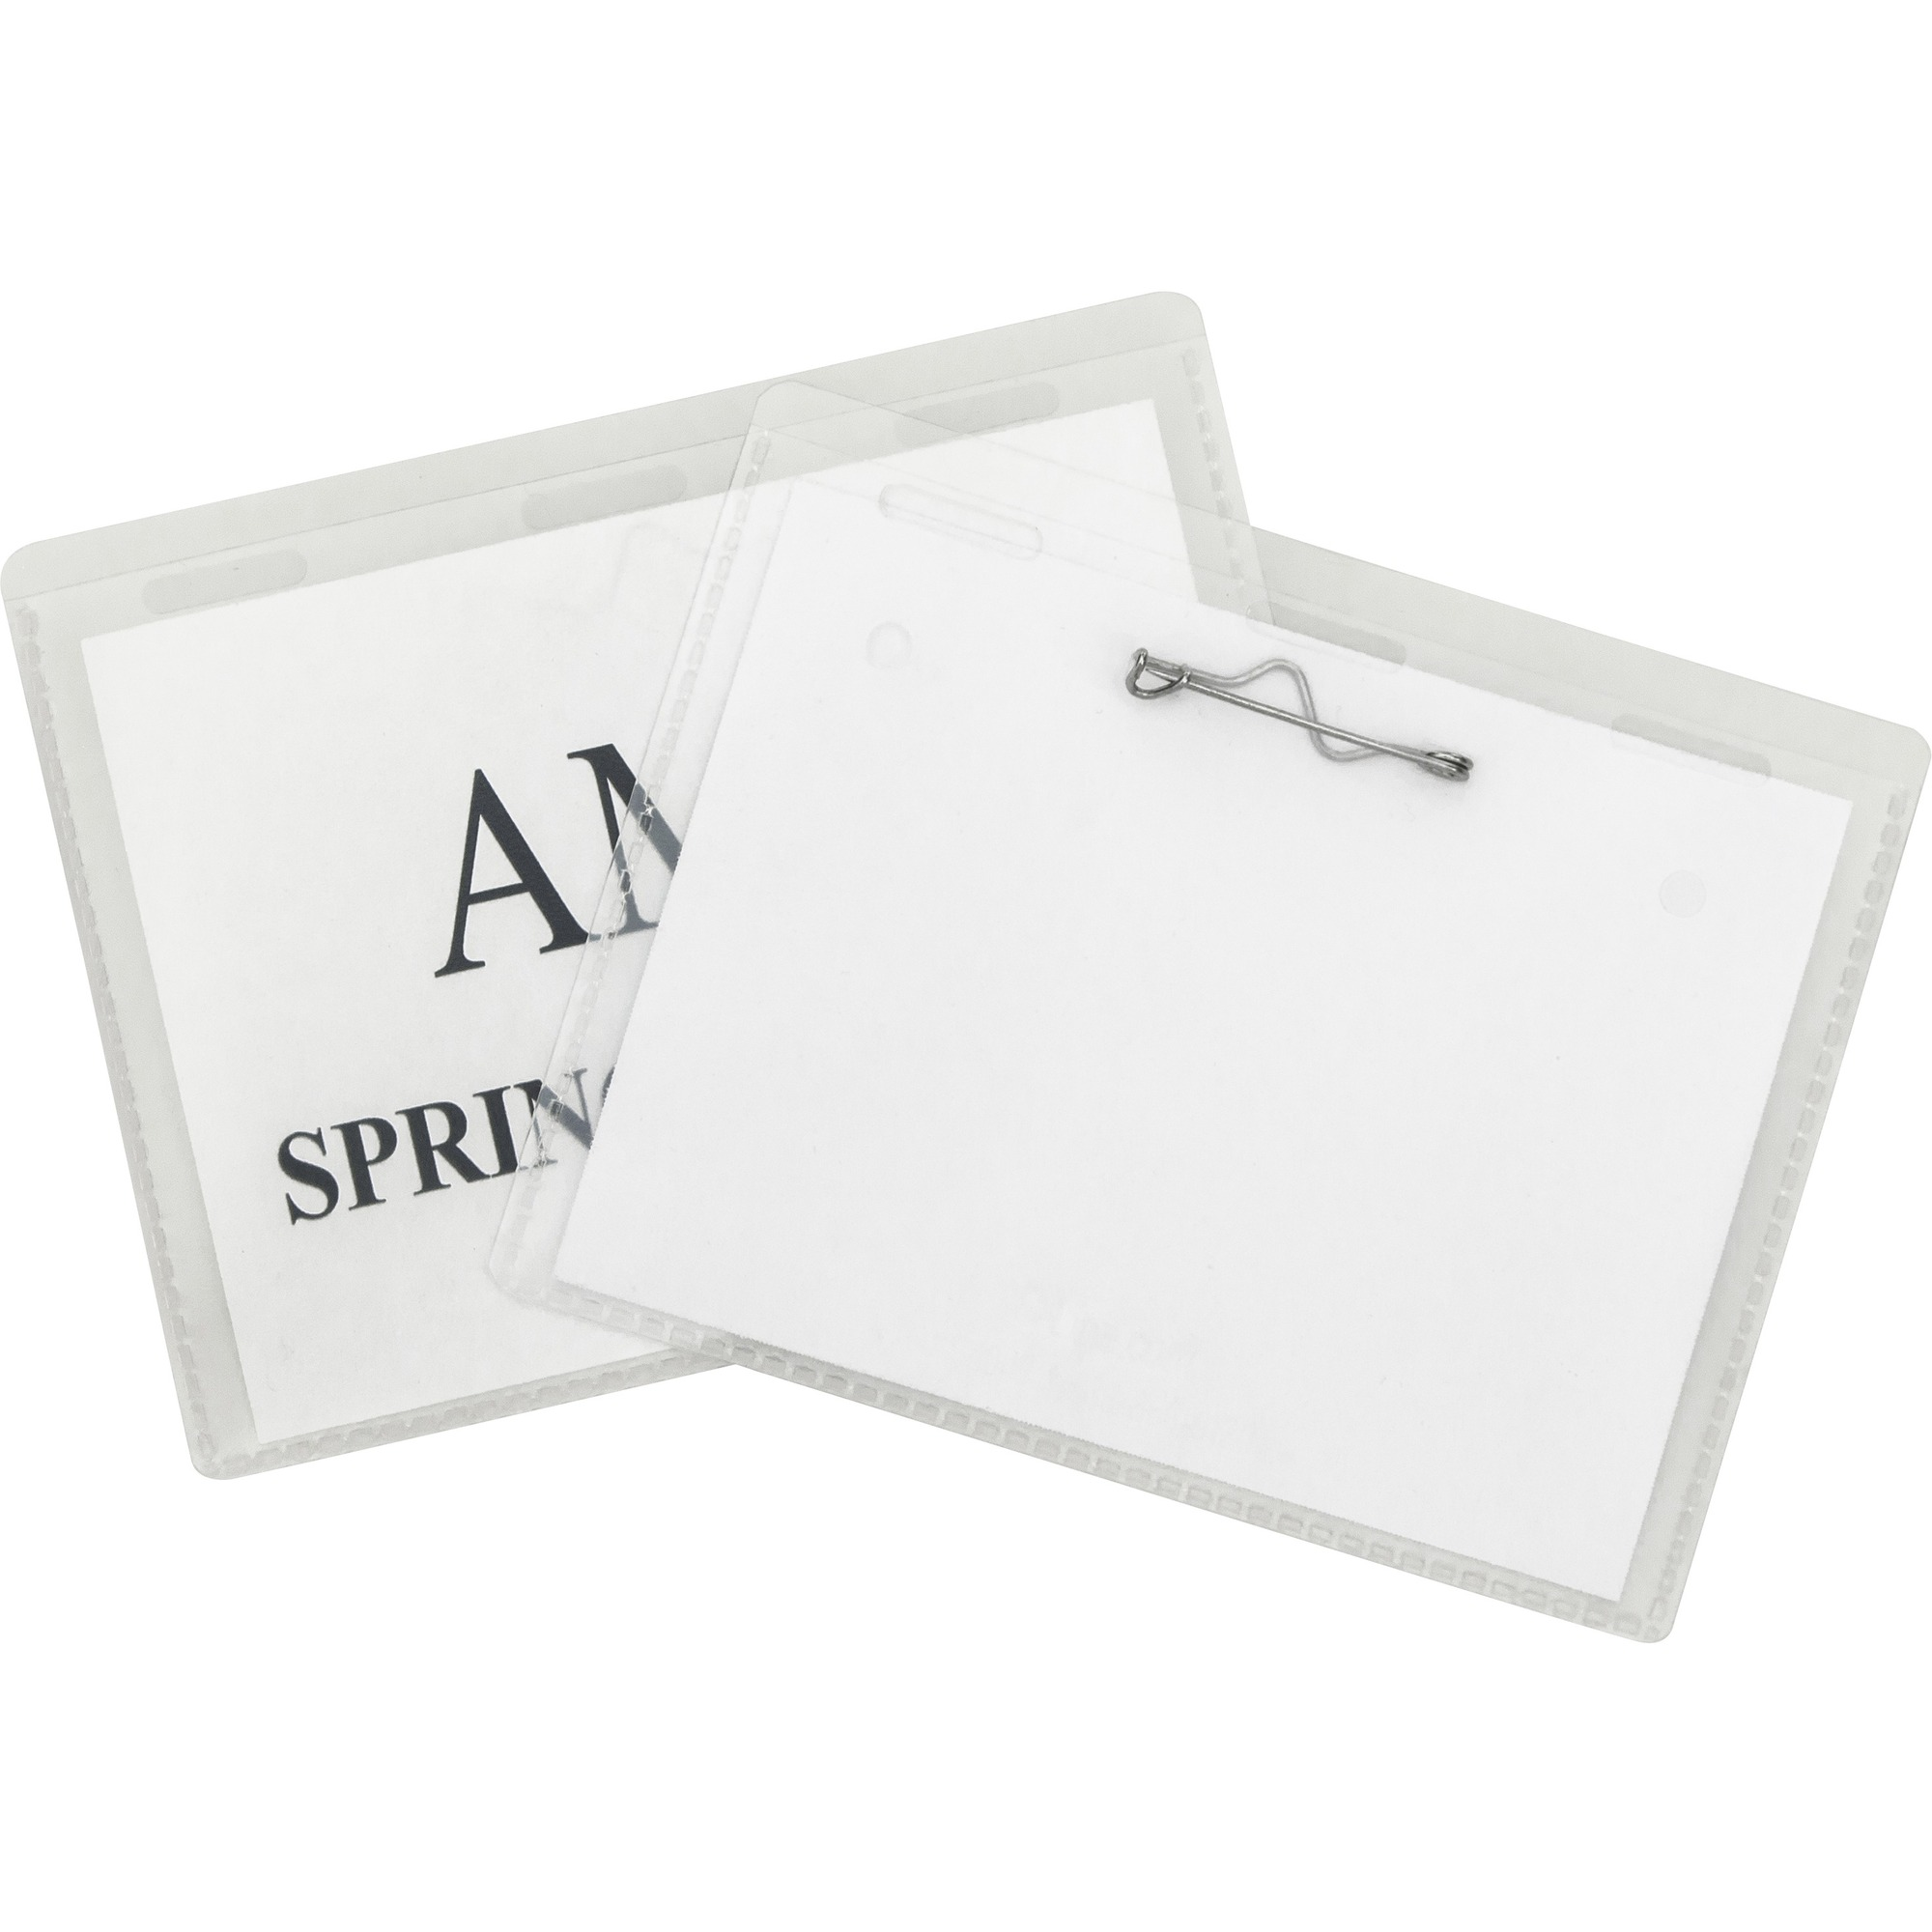 1db147fd7710f C-Line Pin Style Folded Name Badge Holders - 2.30